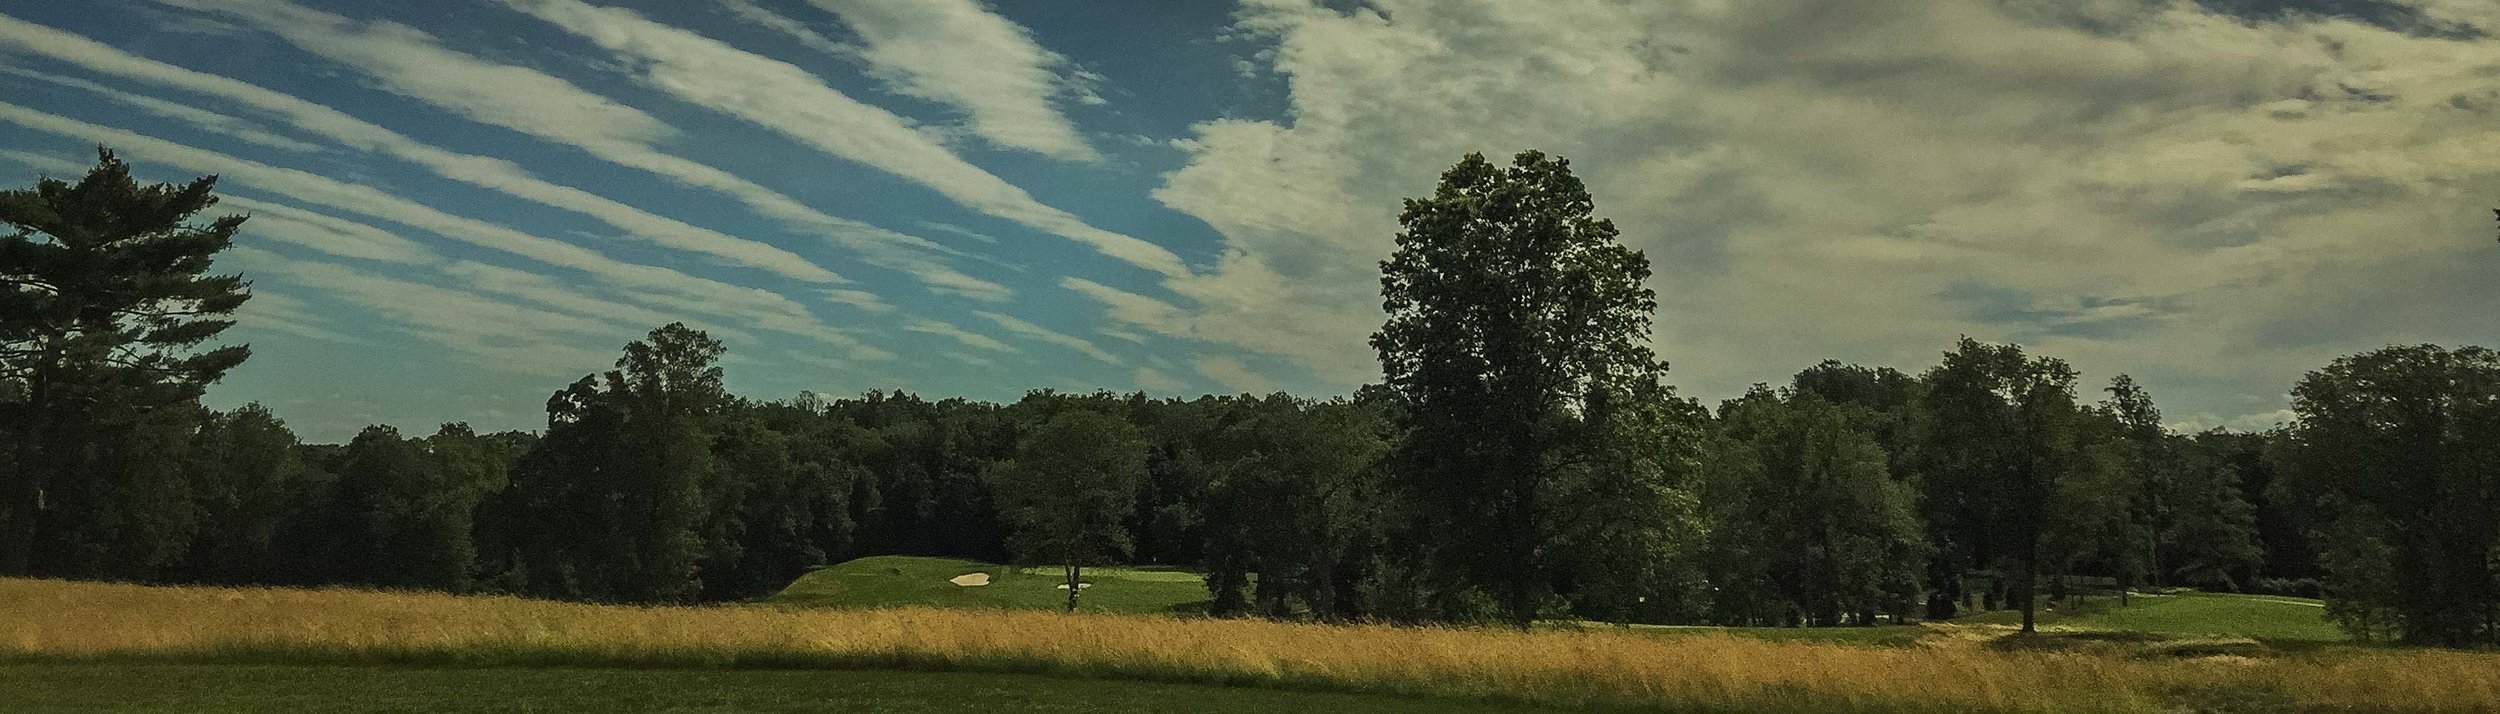 Golf Course SCC 2018- HAP (8 of 33).jpg